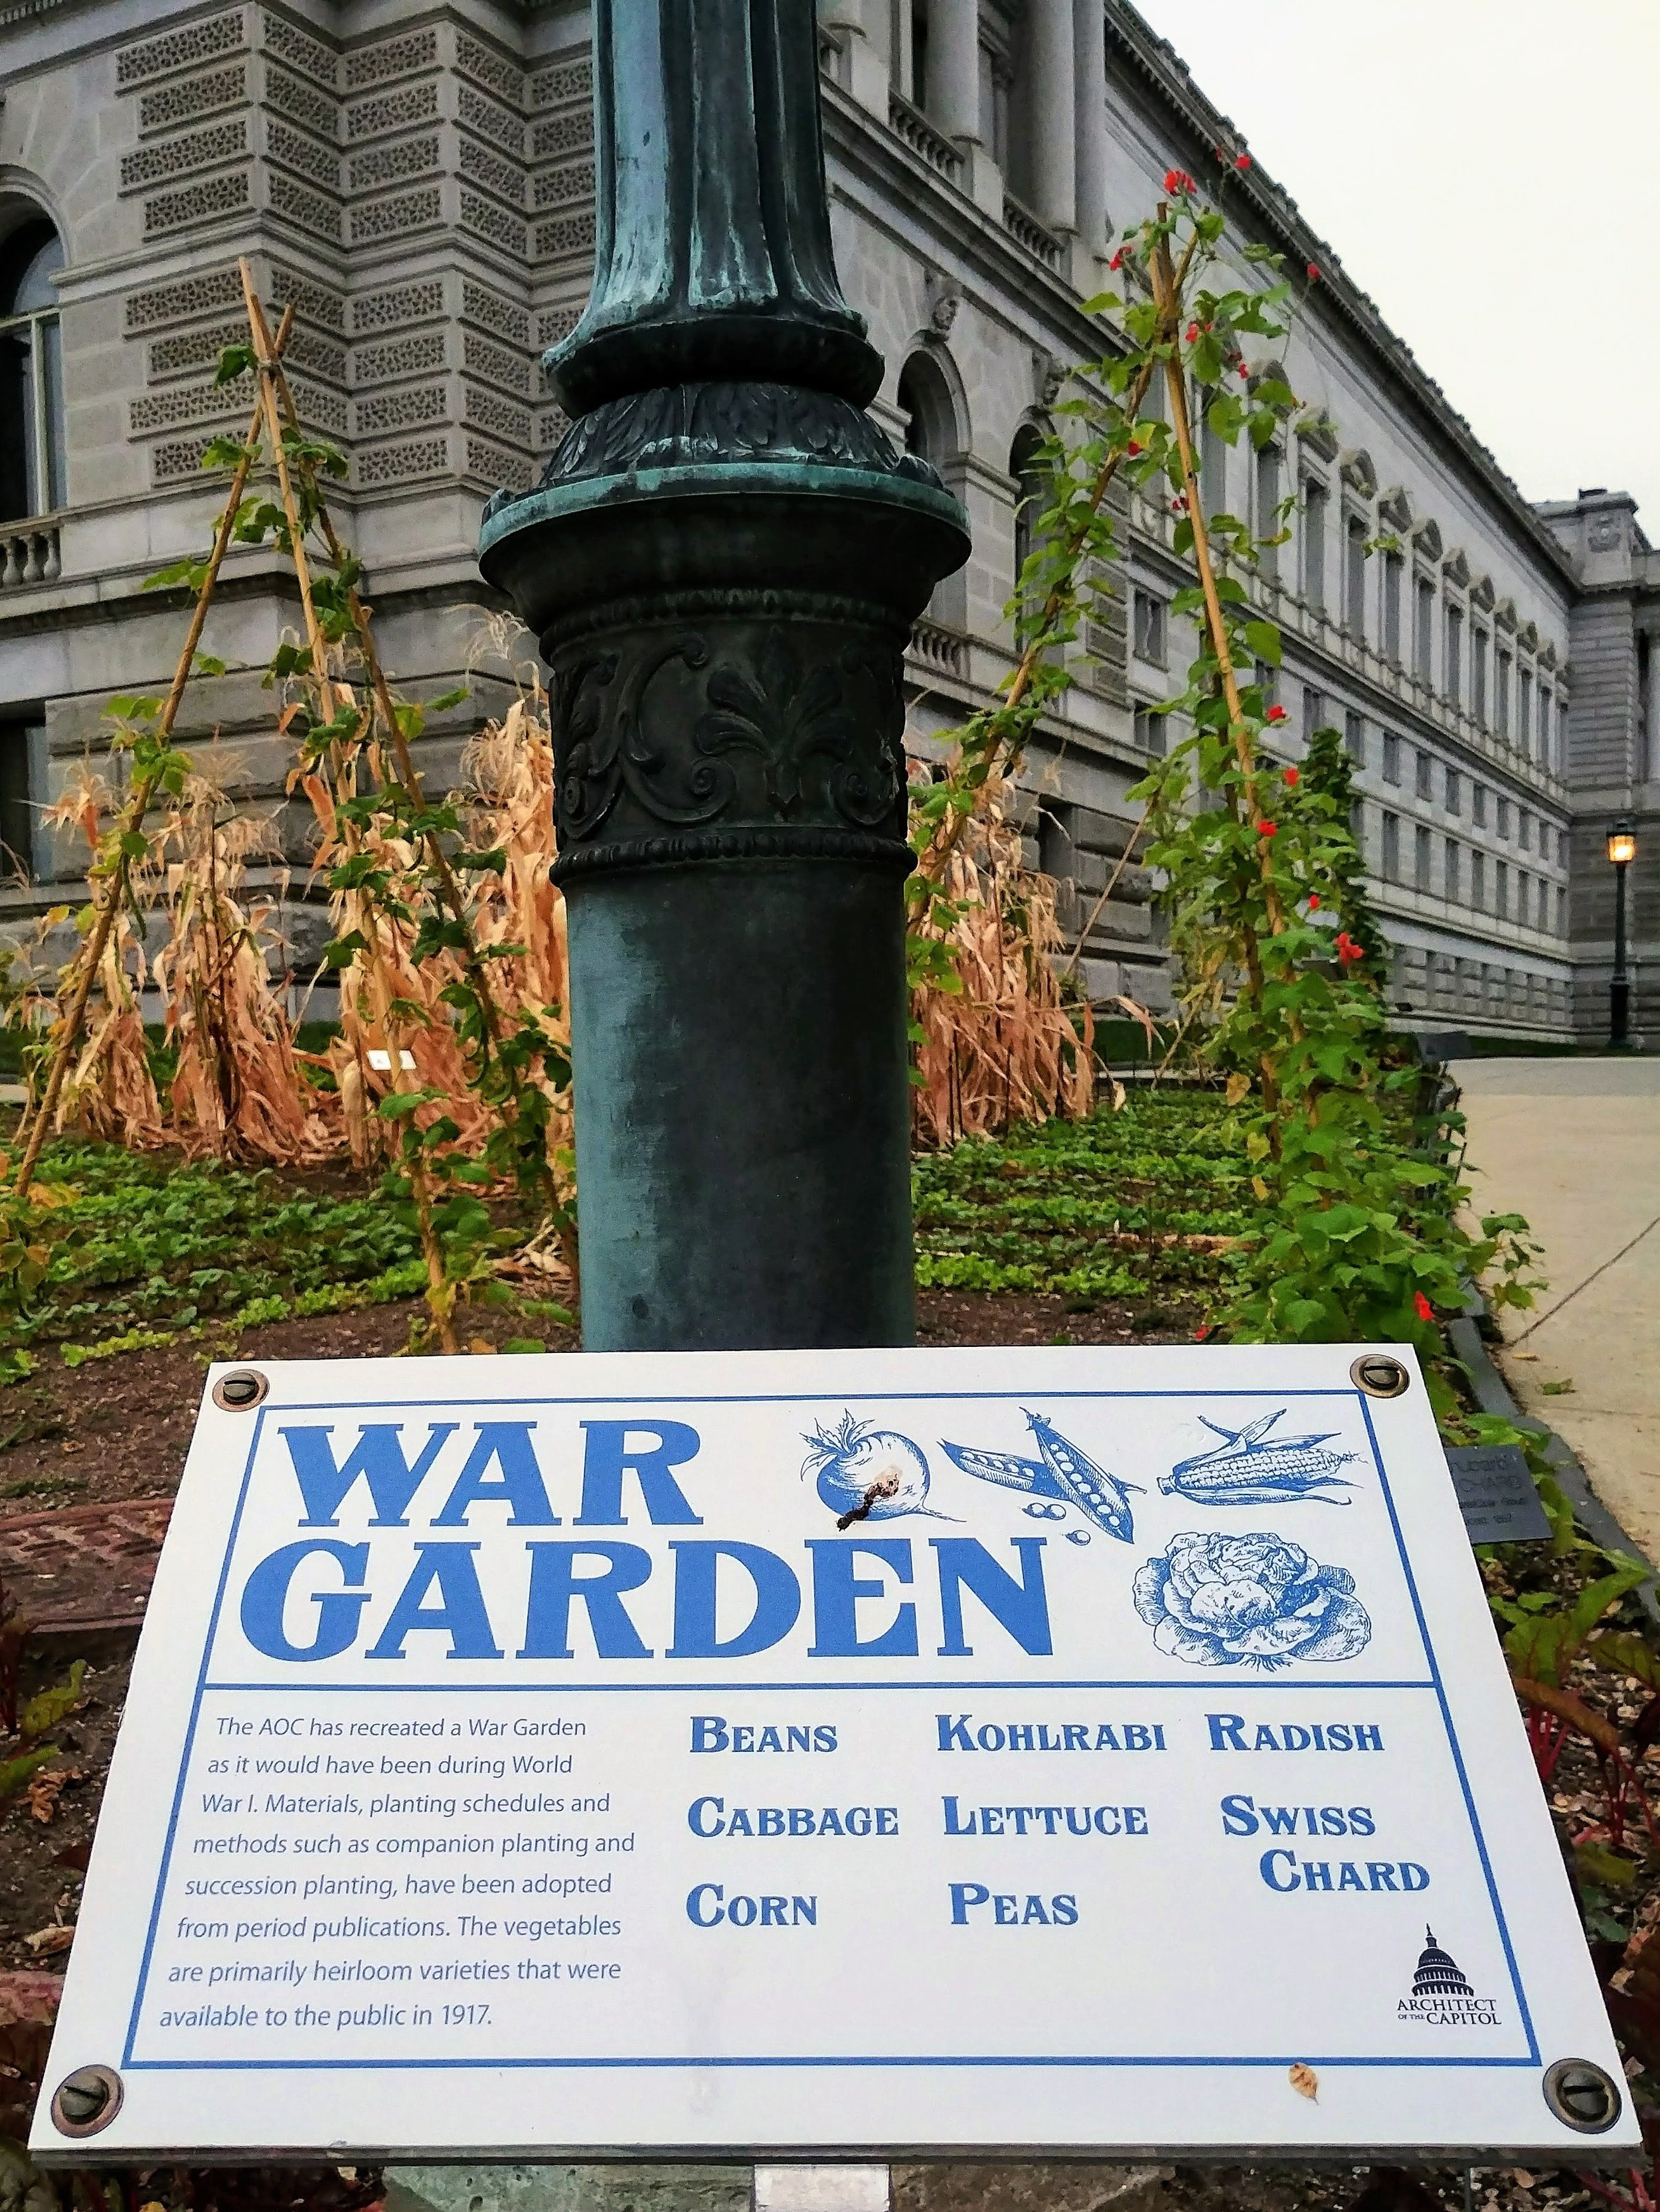 Find gardens on the southwest, southeast, and northwest corners of the Library grounds.